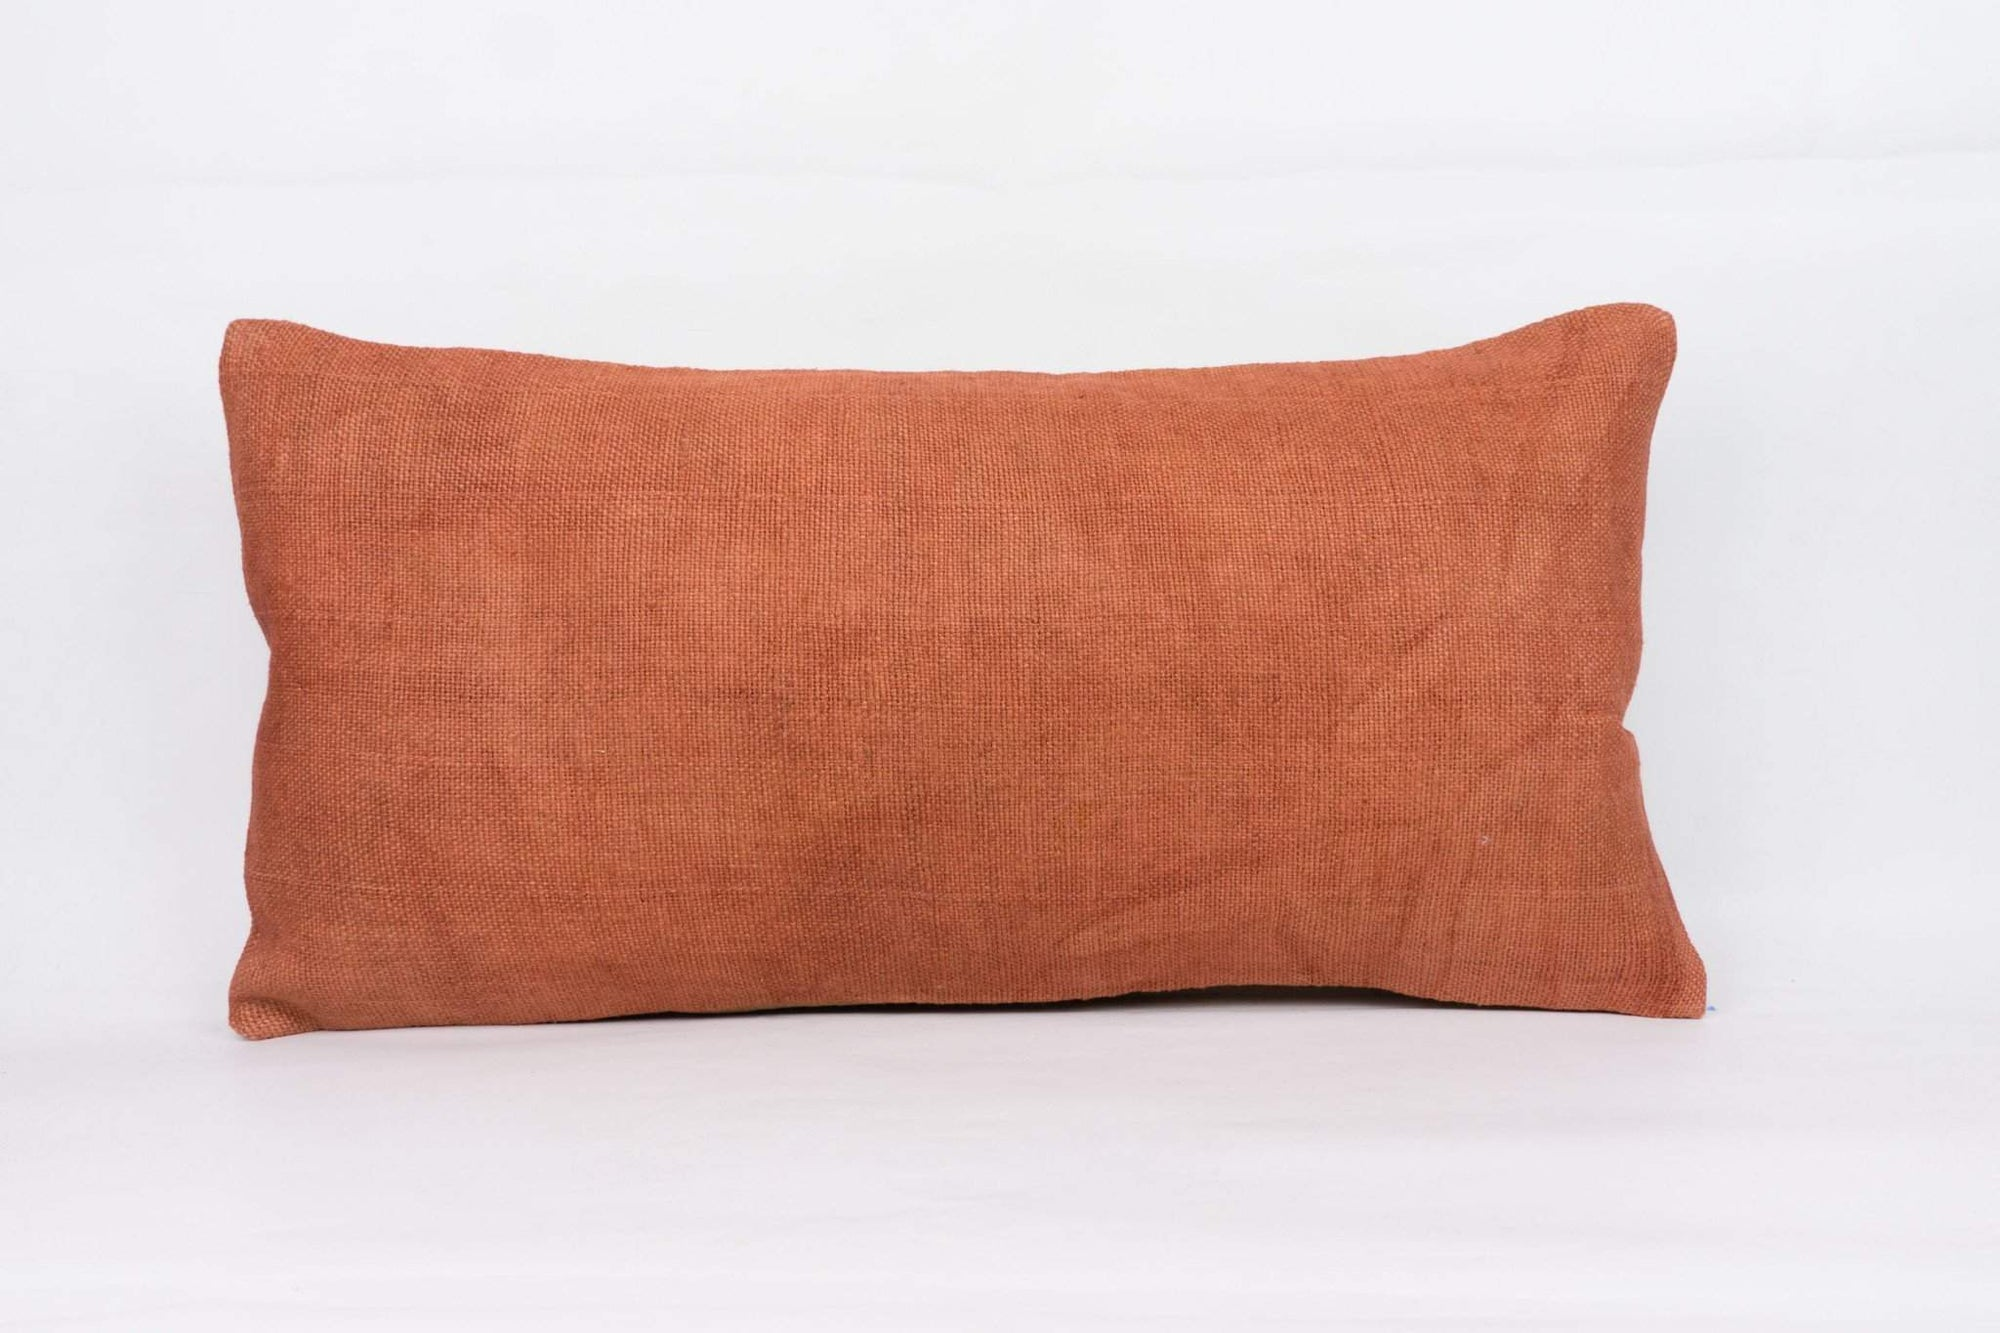 Plain Brown Kilim Pillow Cover 12x24 4178 - kilimpillowstore  - 1